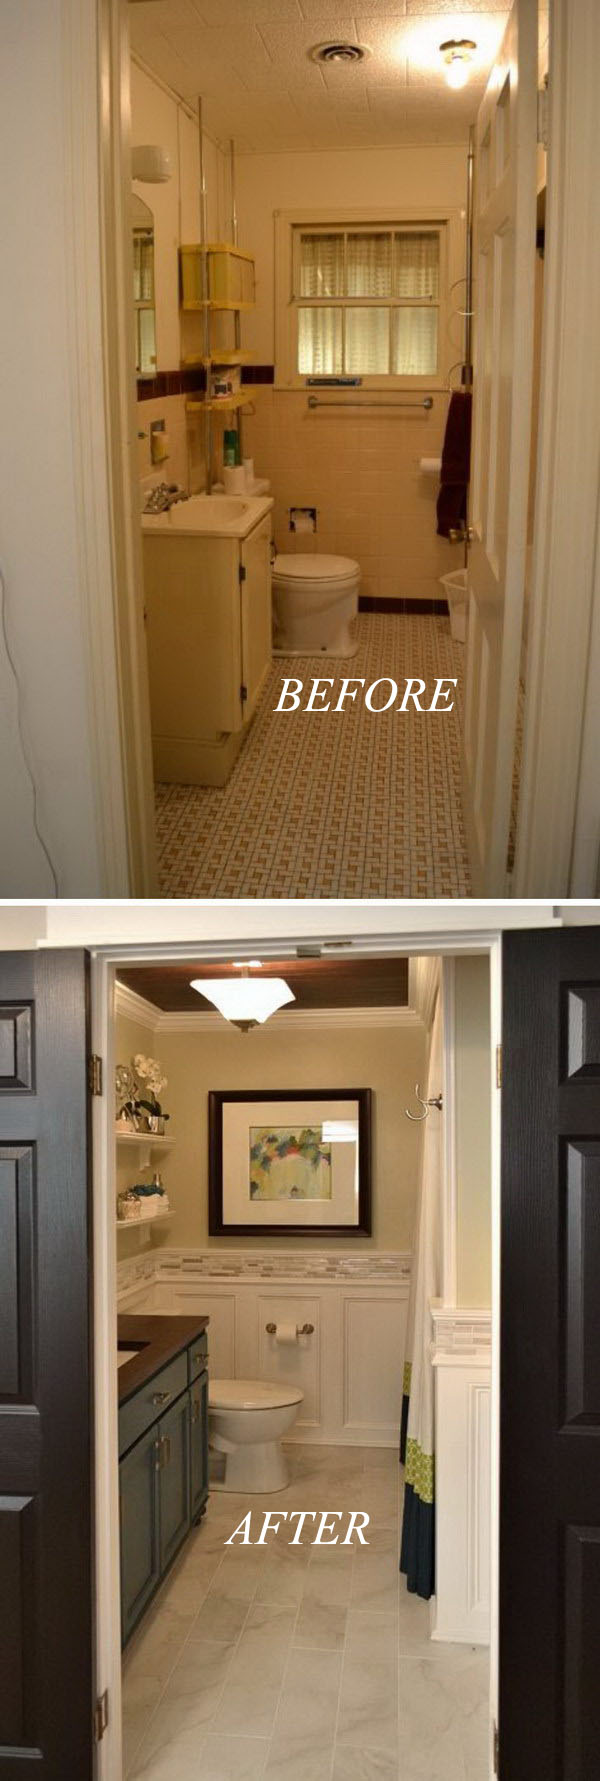 33 inspirational small bathroom remodel before and after diy design decor - Pictures of small bathrooms ...